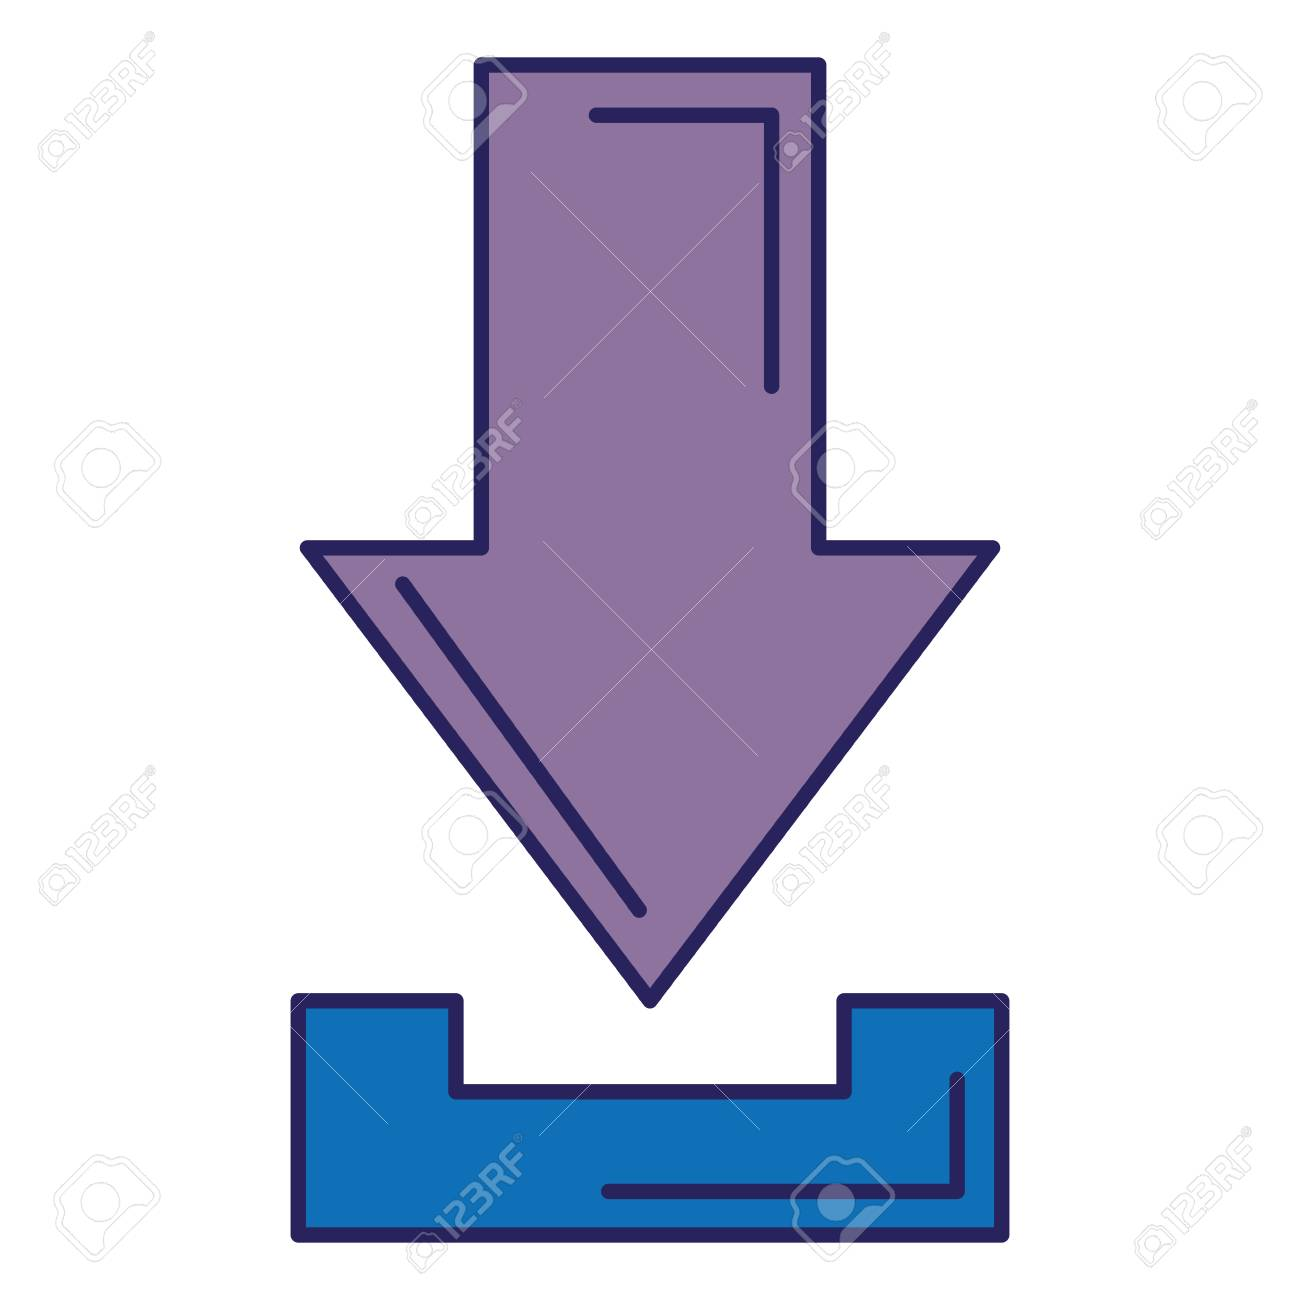 arrow download isolated icon vector illustration design - 89507863